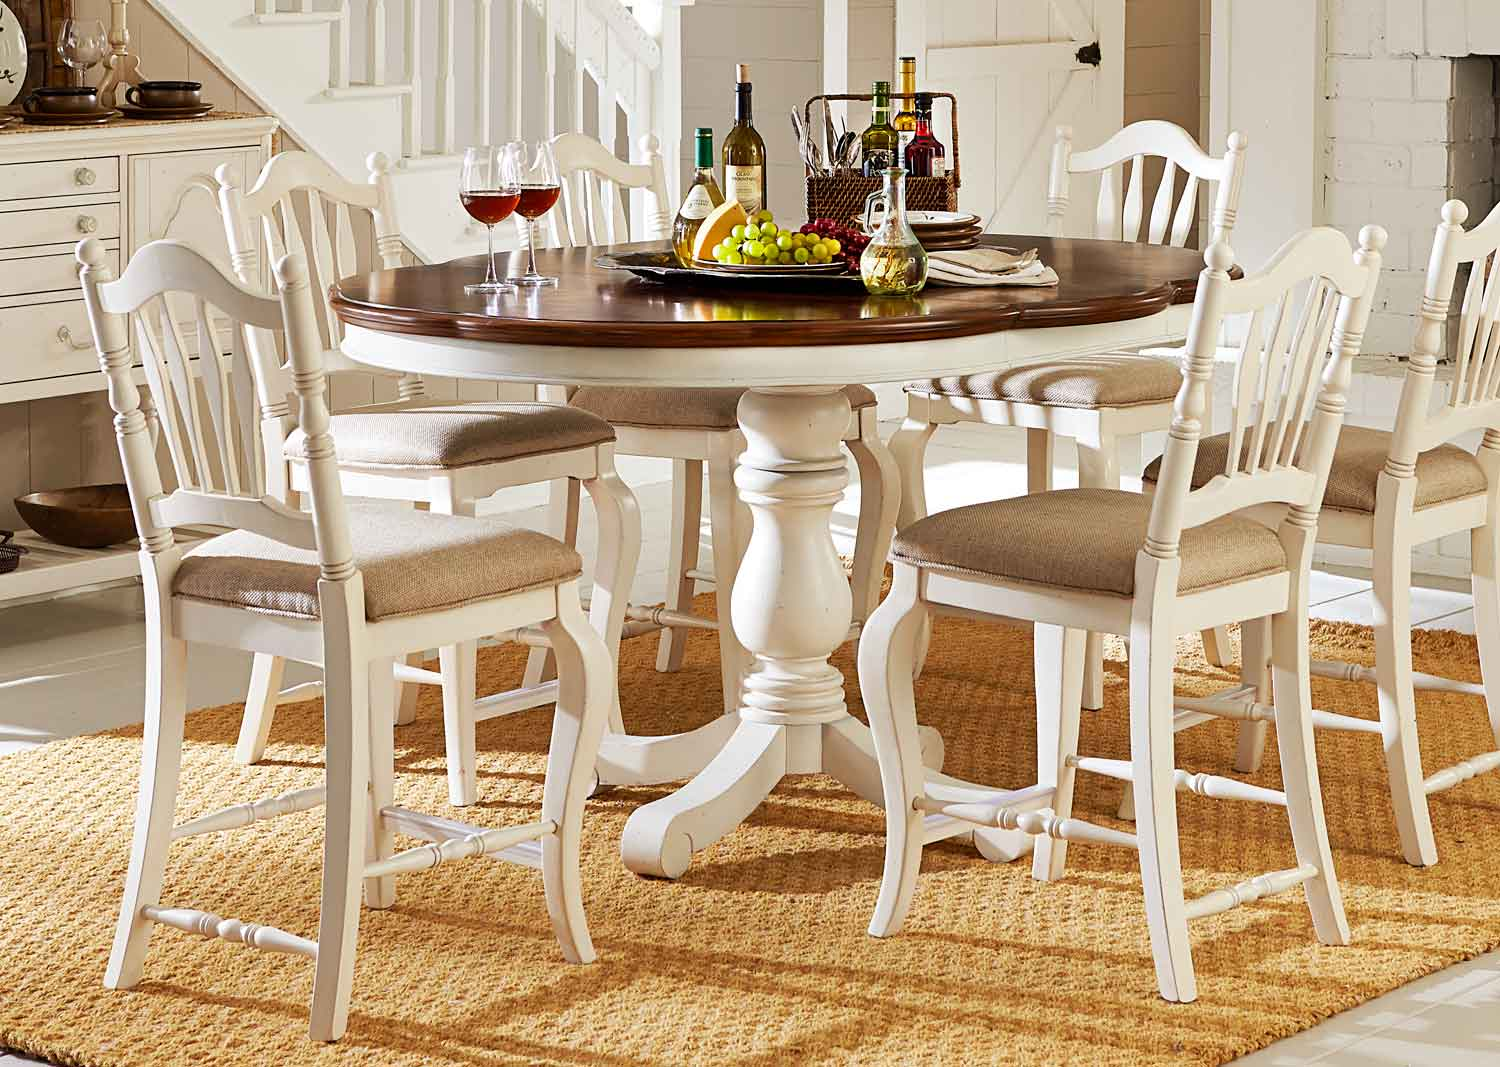 Legacy Classic Haven Pub Dining Set - Buttercream White/Slight Distressing